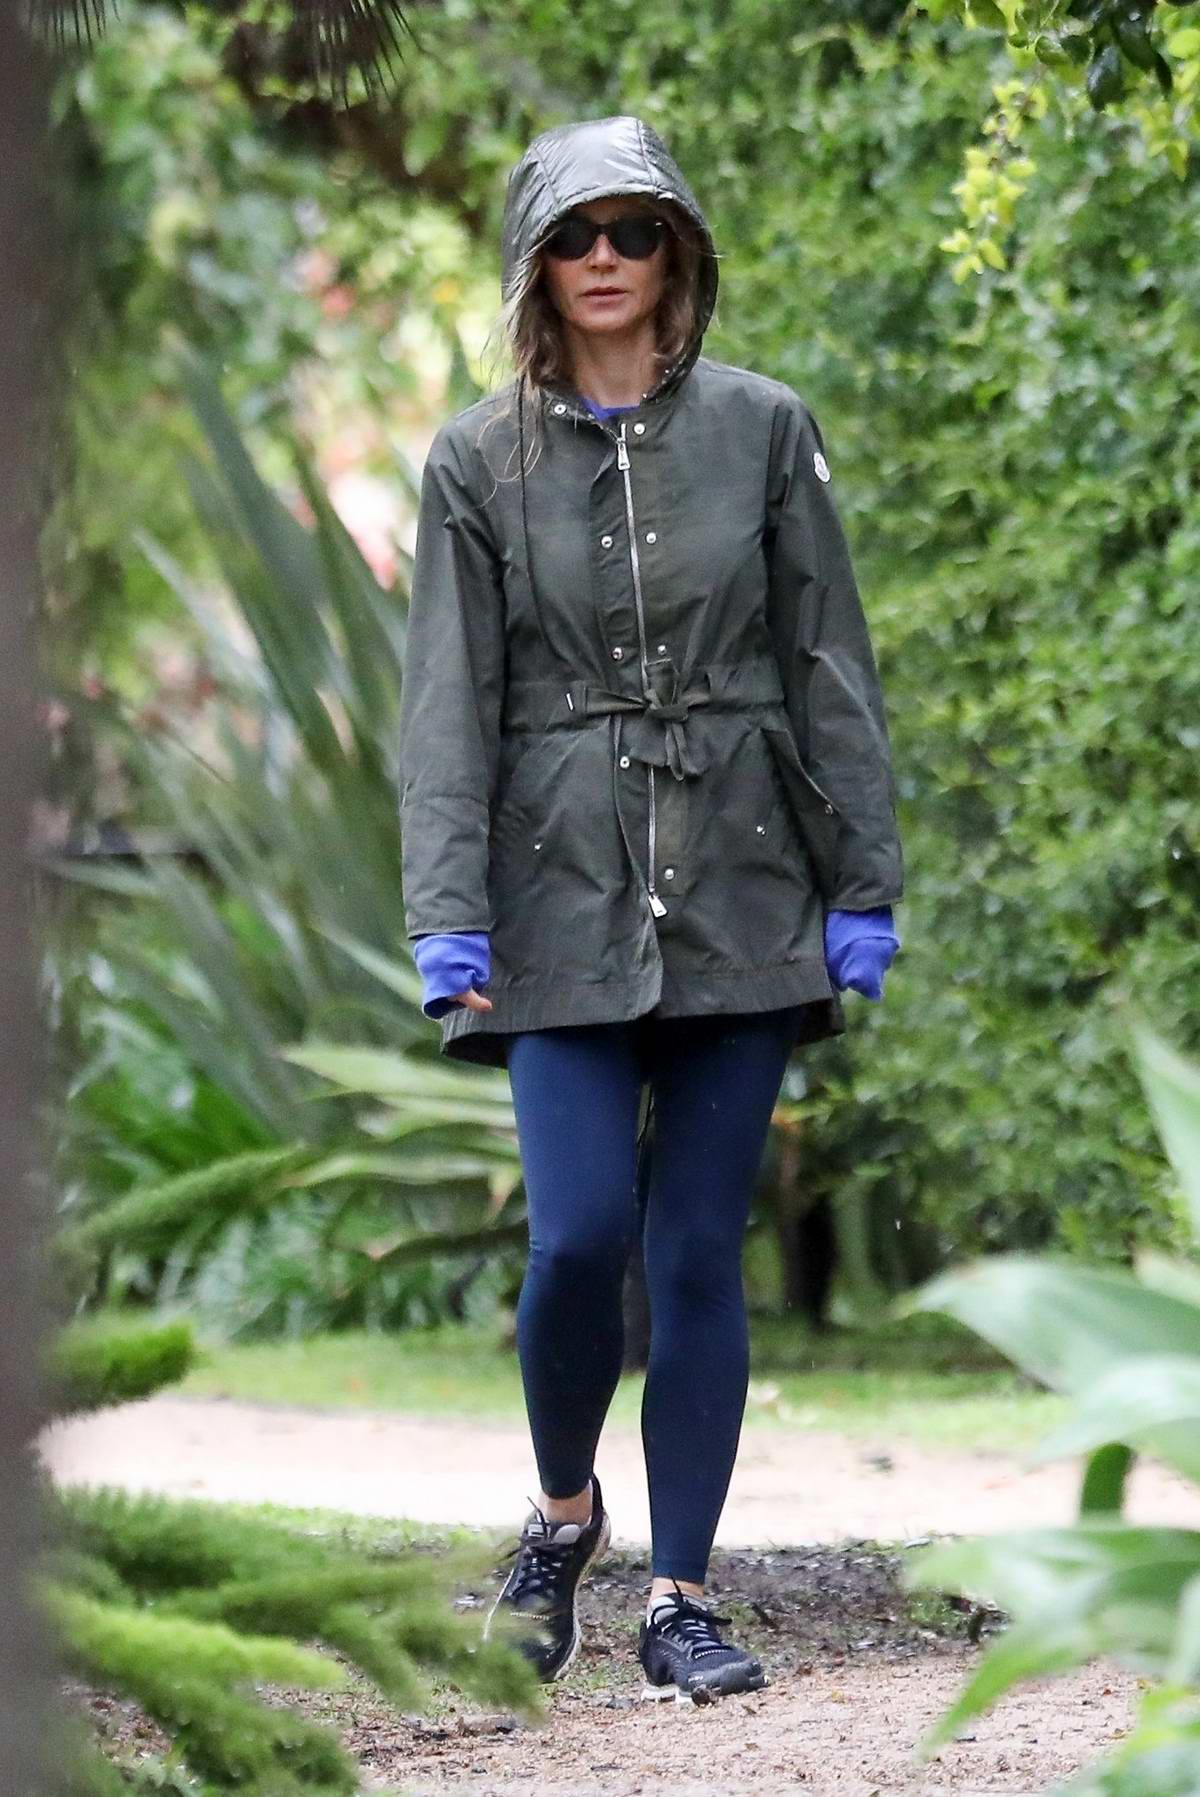 Gwyneth Paltrow wears a hooded jacket while out for a walk on a rainy day with Brad Falchuk in Brentwood, California